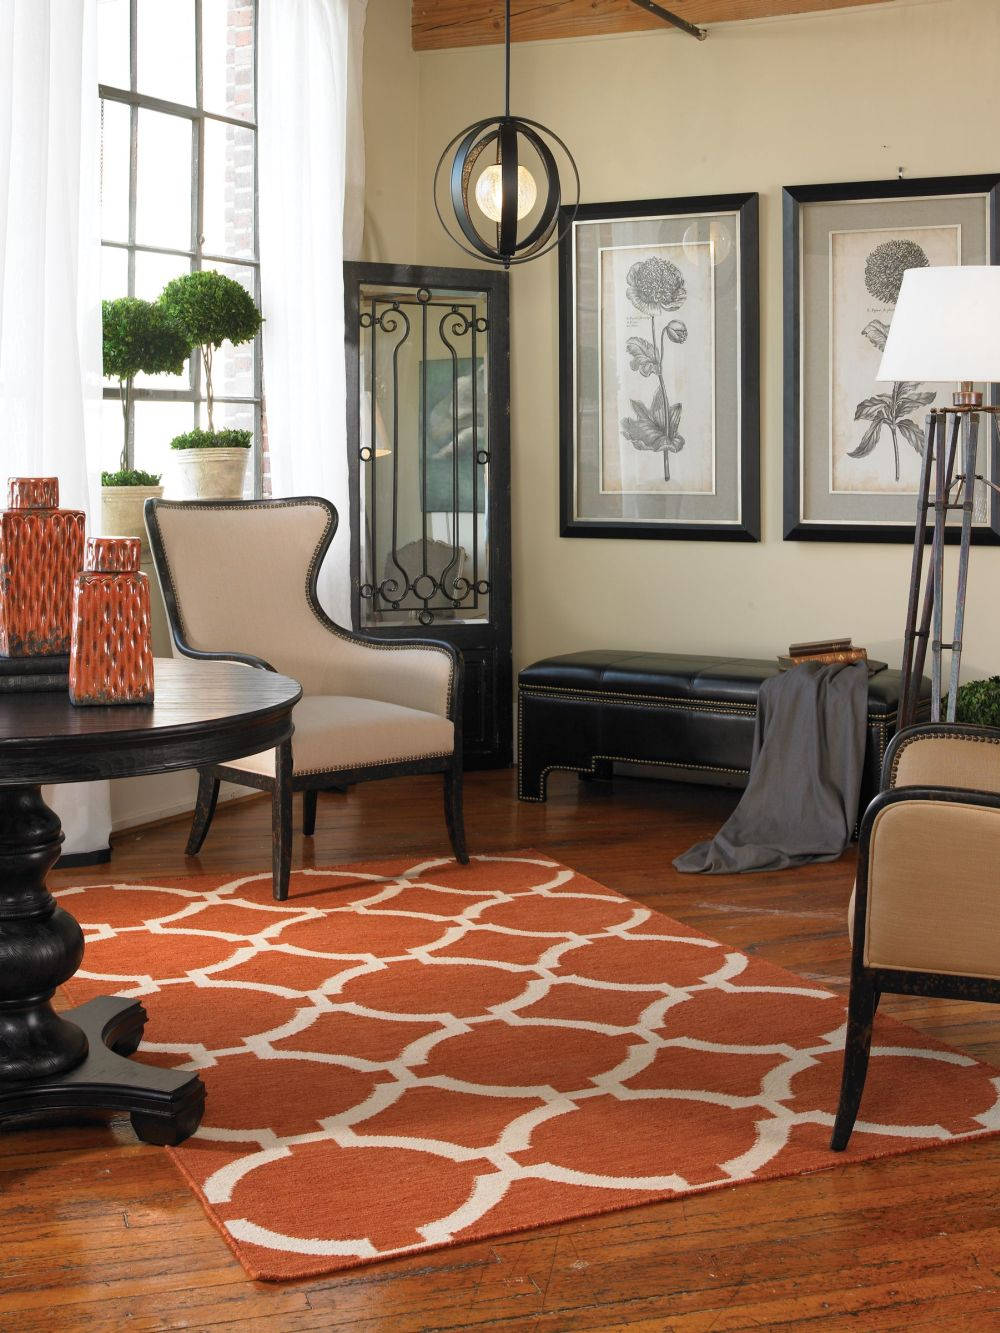 5 Creative Ways of Decorating Your Living Room with Rugs